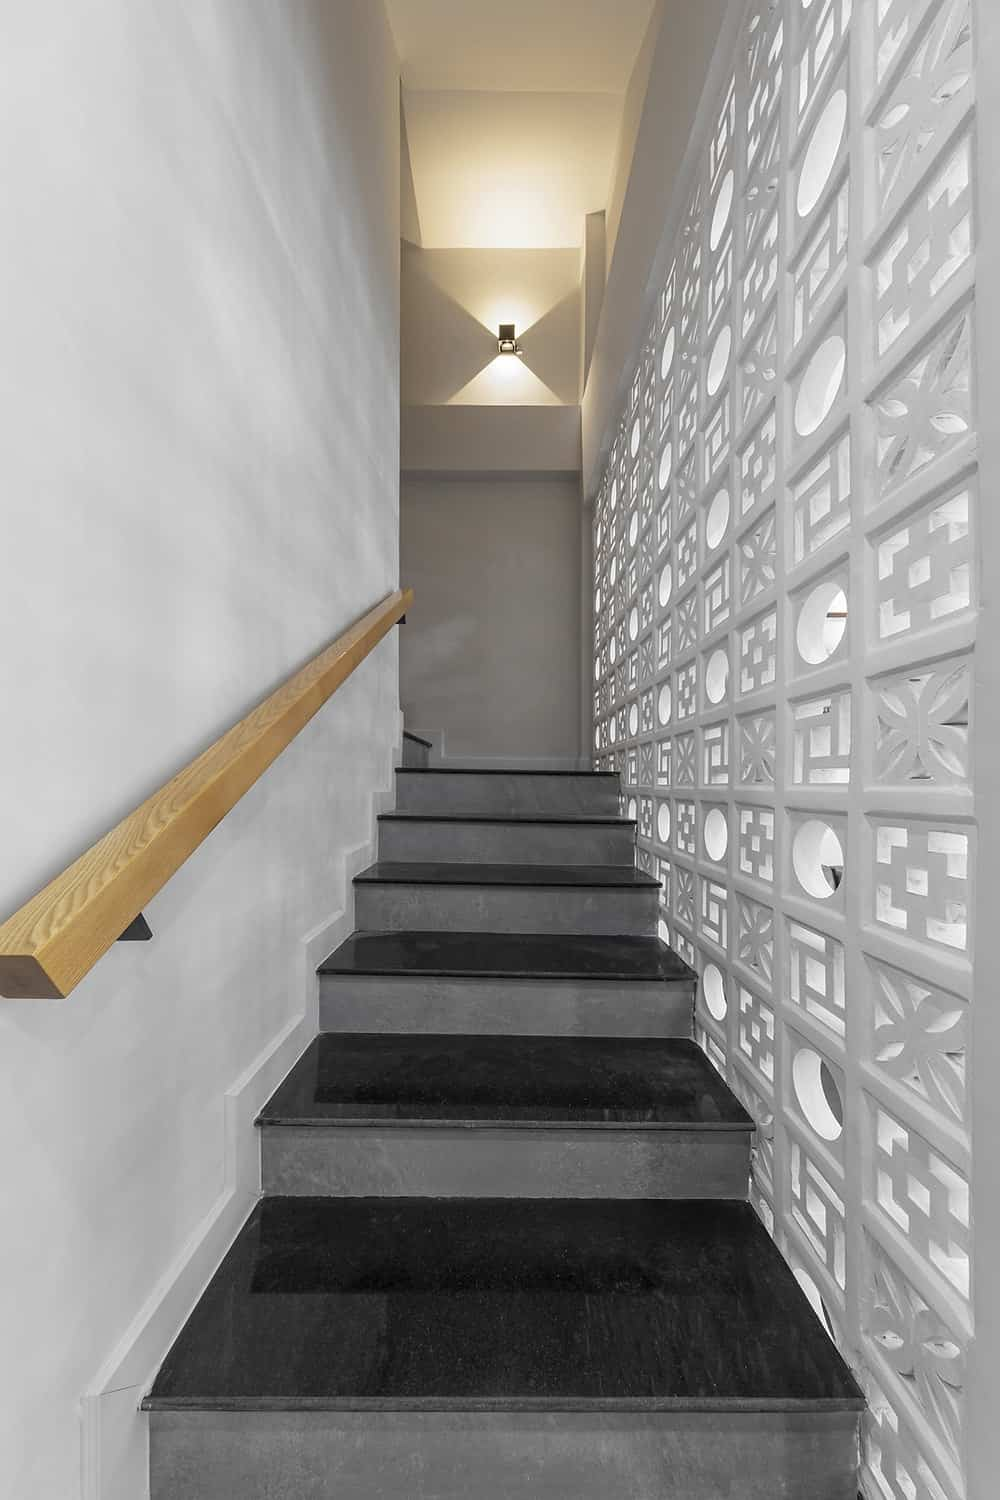 On the opposite side of the floating wooden hand rails is a gray wall with patterned decorative concrete blocks.